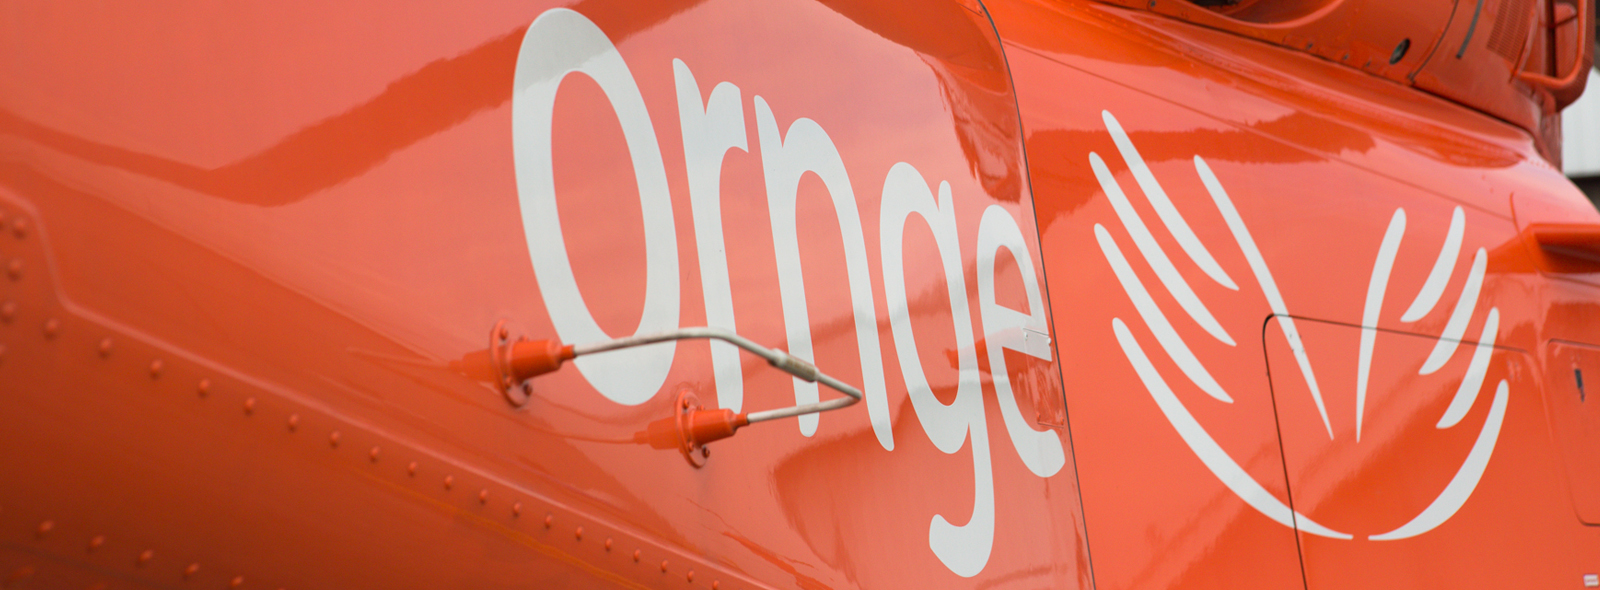 Ornge helicopter cowell